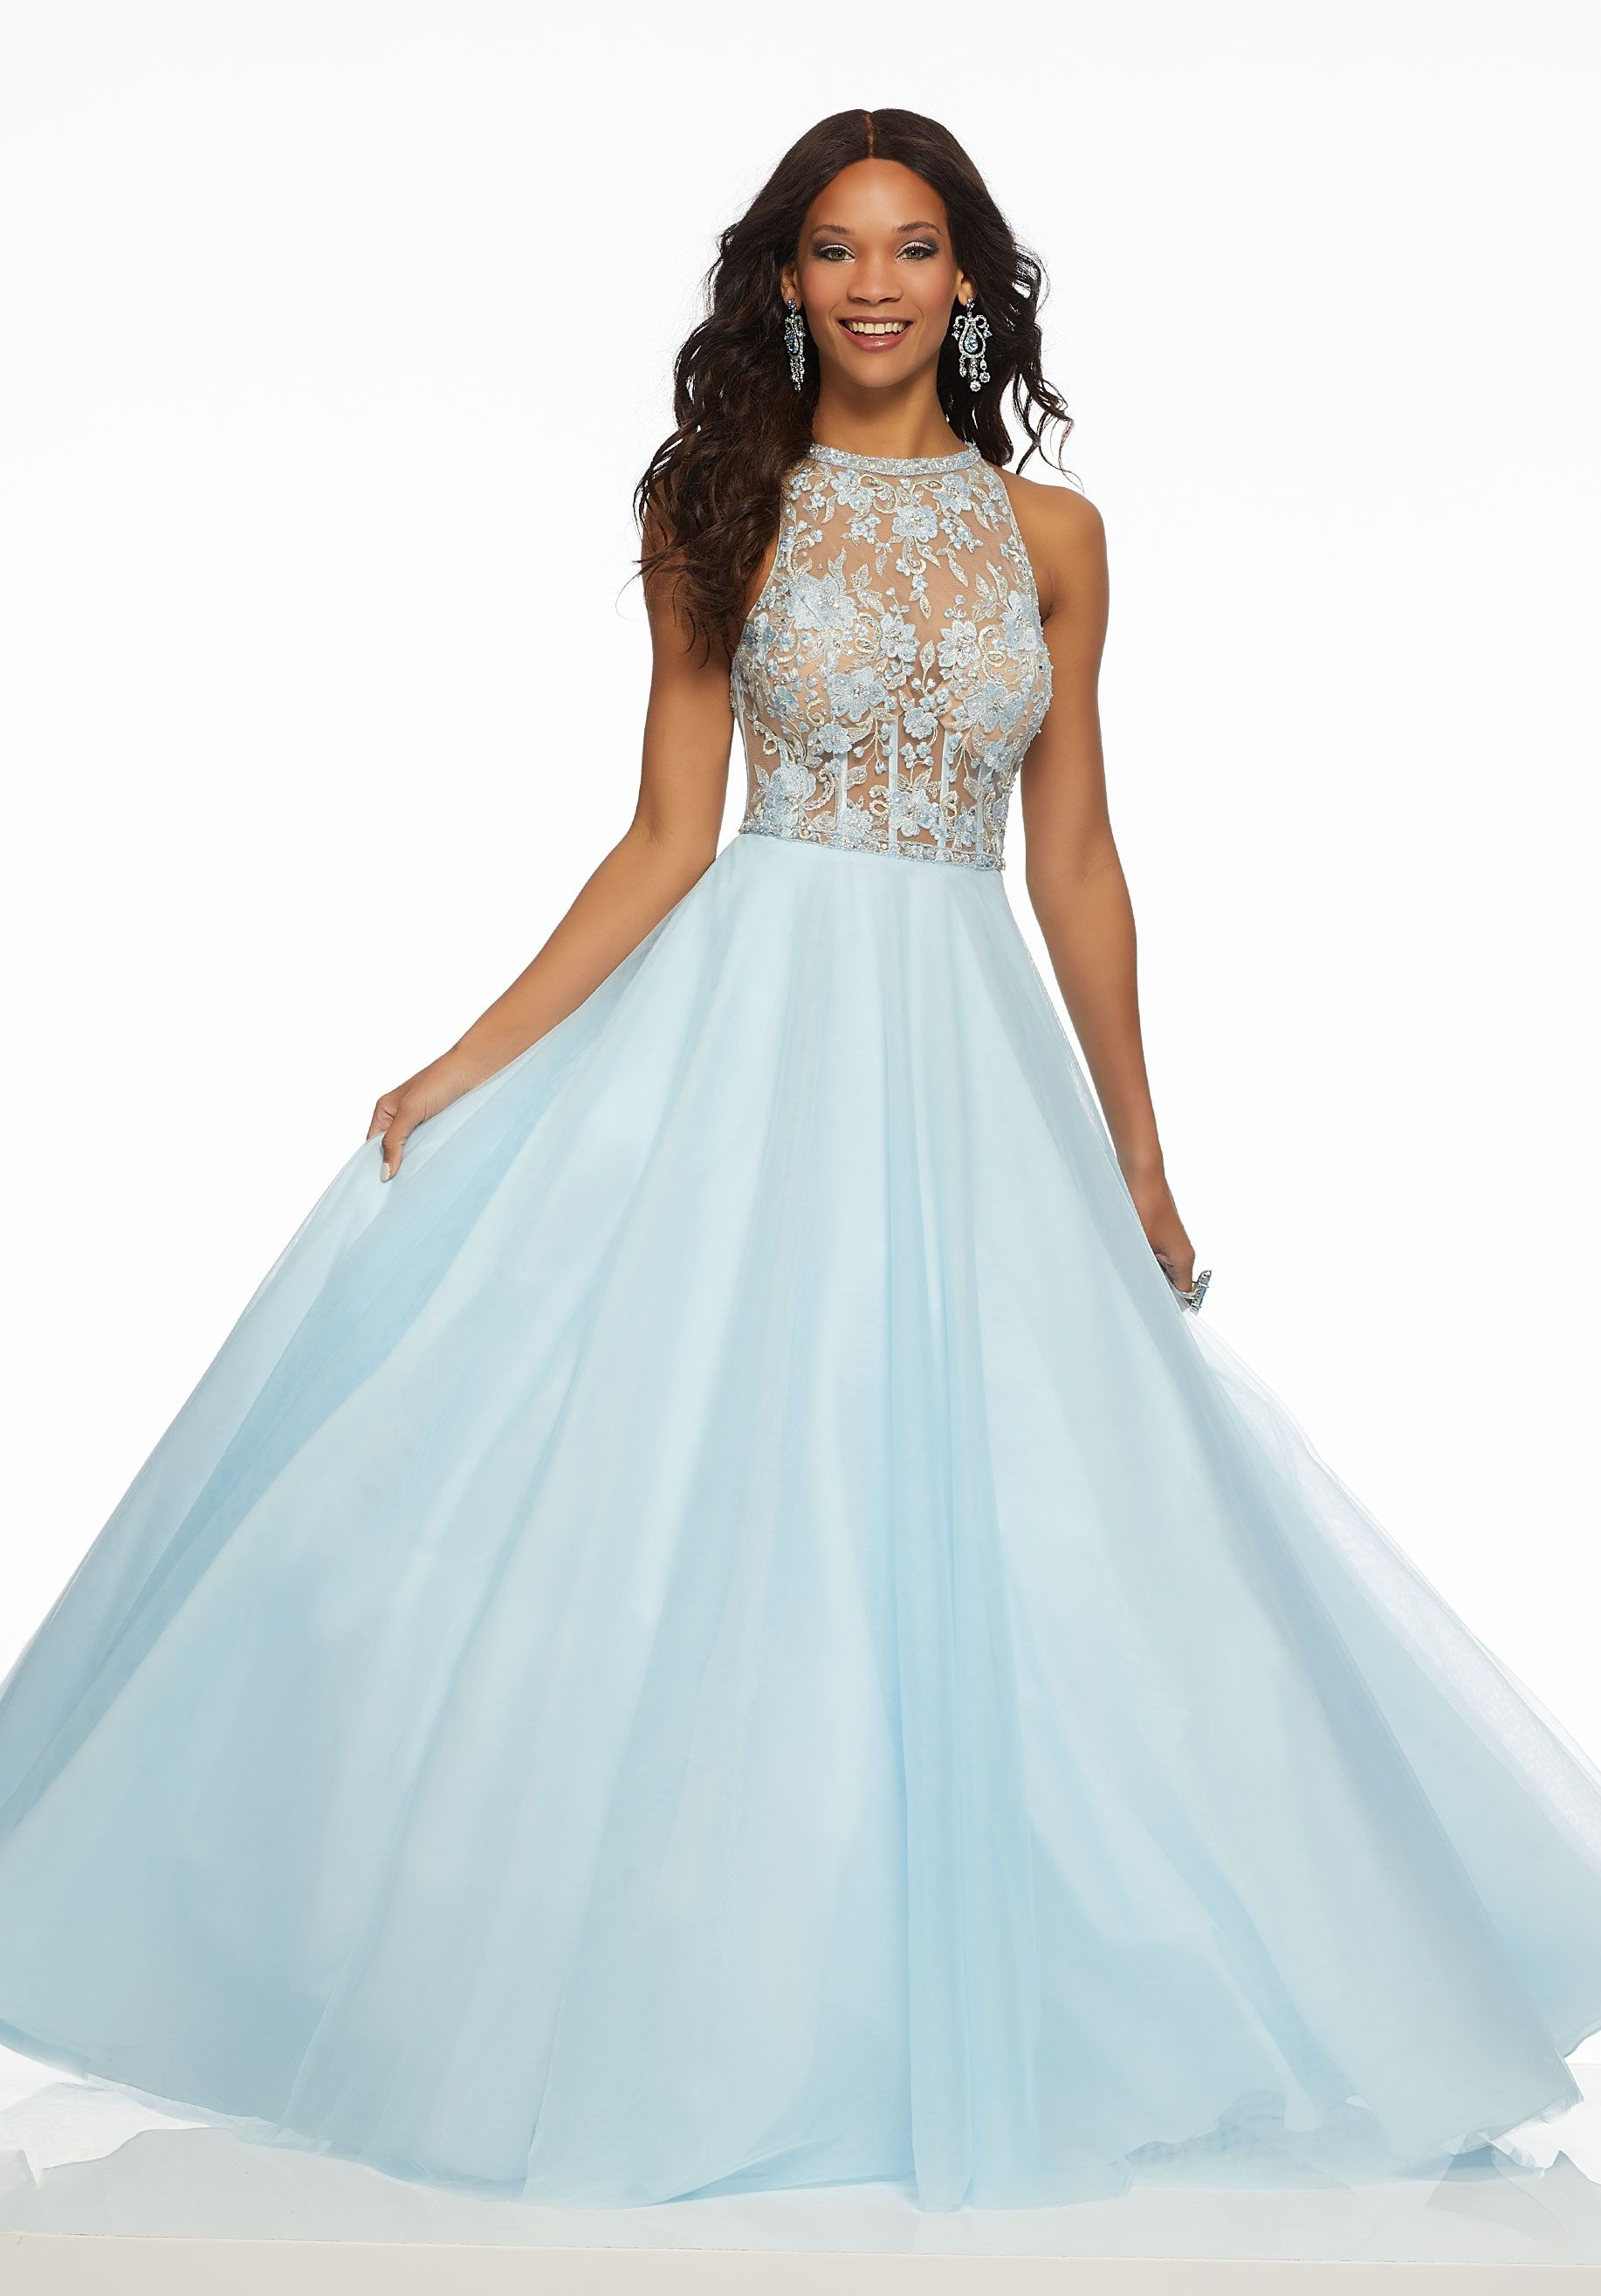 0a56505b844 Beaded Embroidery on Tulle Beautiful Prom Ballgown Featuring a Sheer